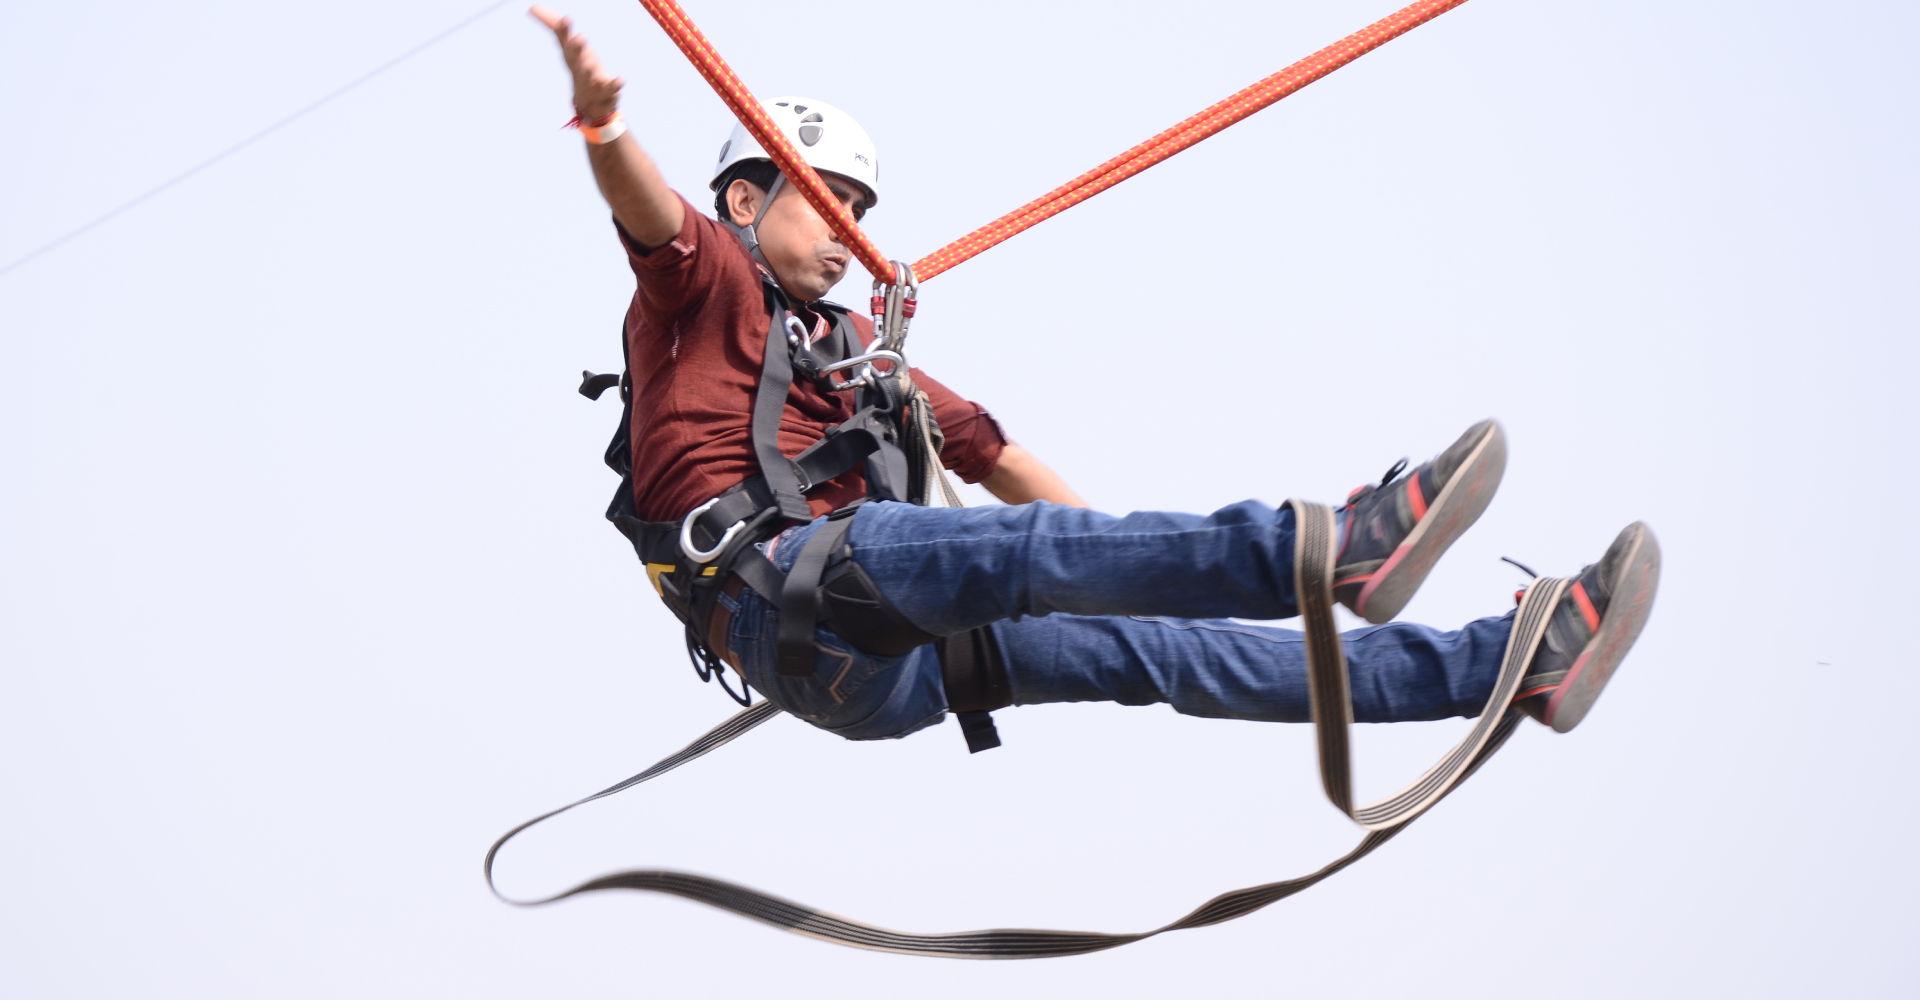 Human Slingshot Construction in india